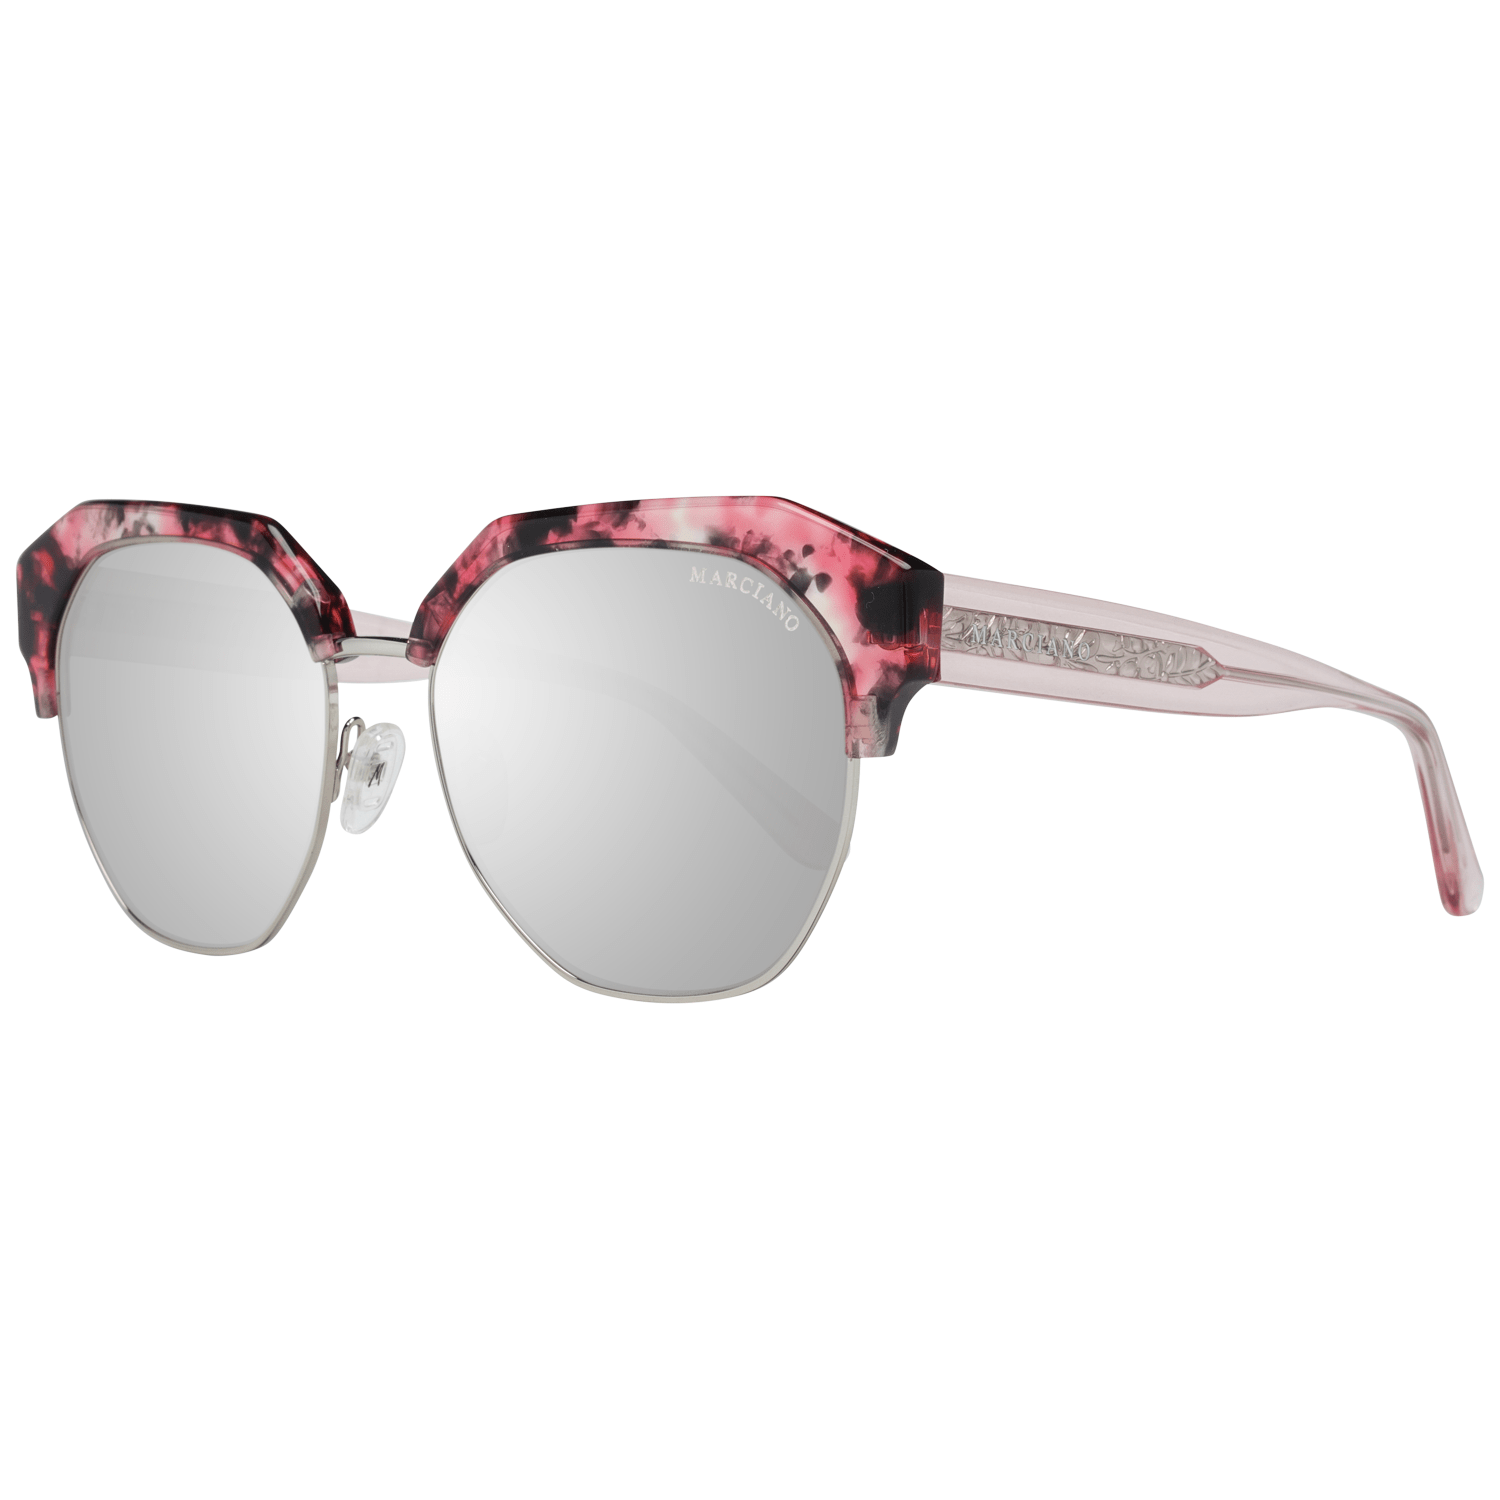 Guess By Marciano Women's Sunglasses Pink GM0798 5554Z